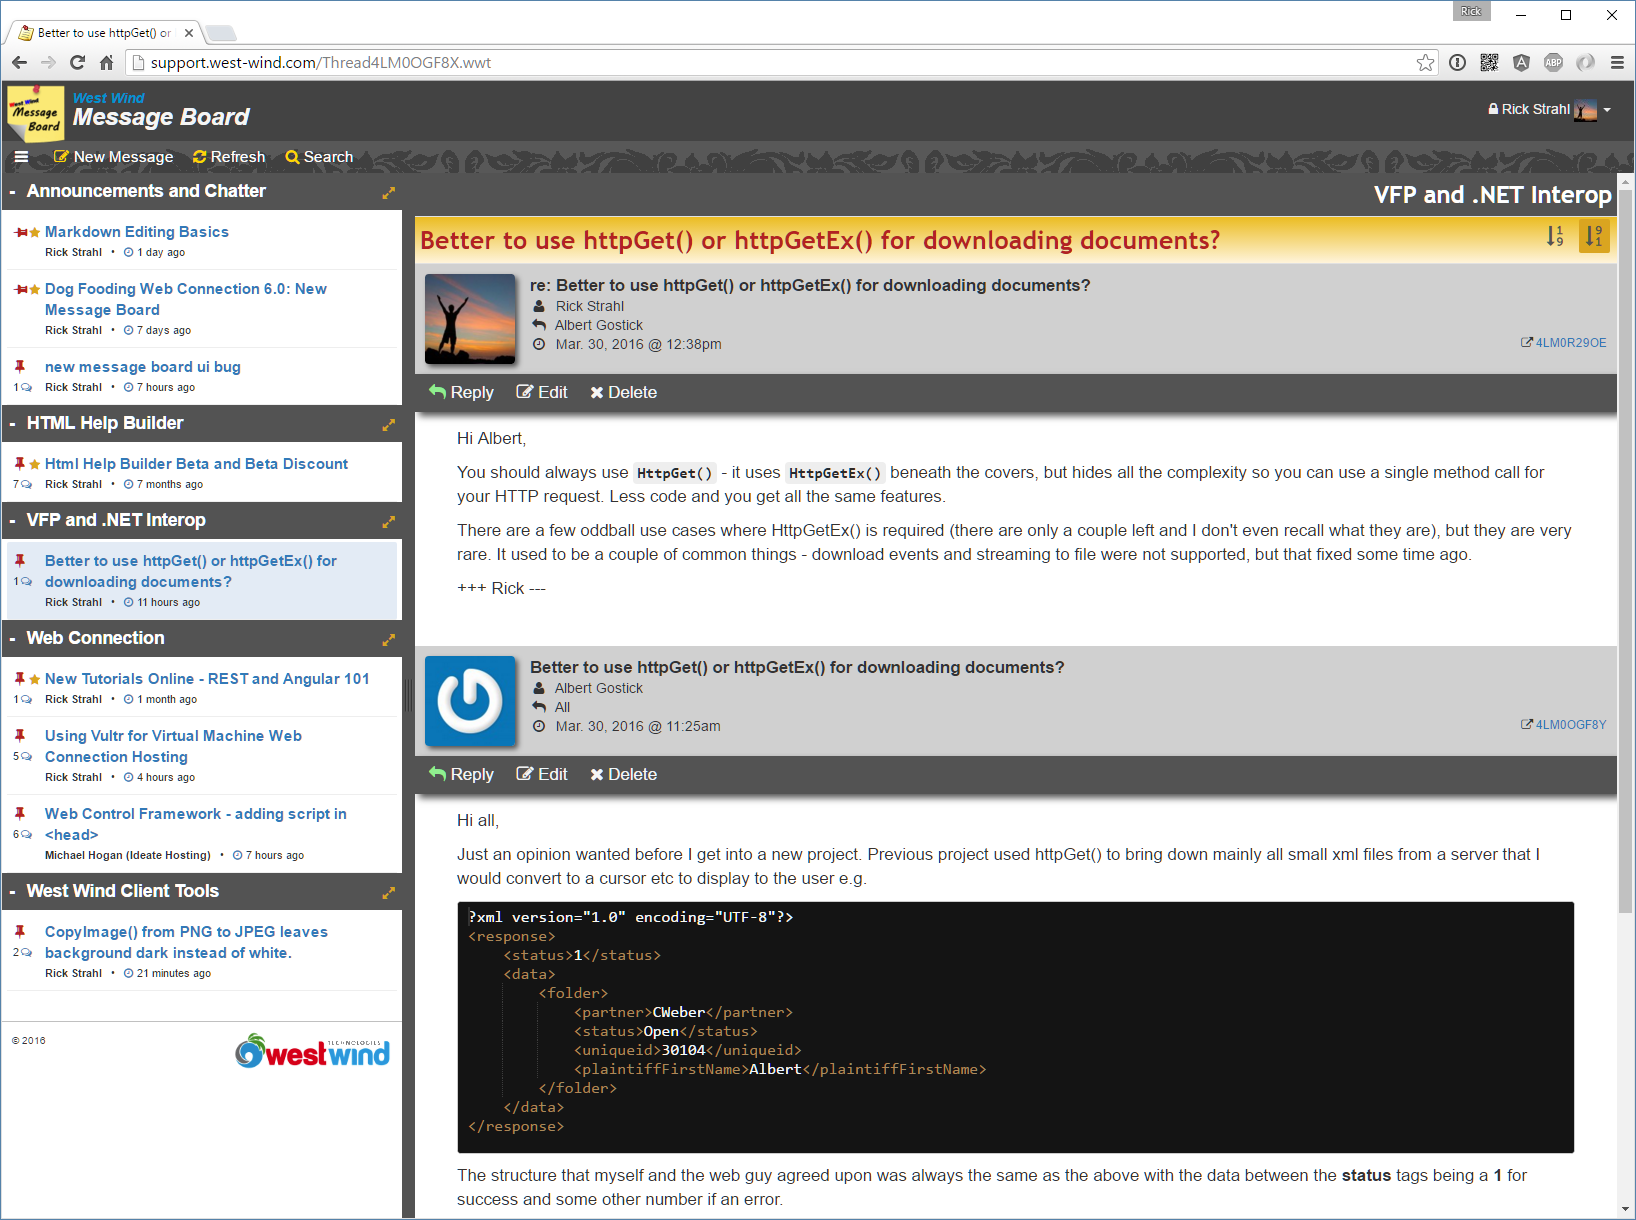 The message board is an example of an a rich, mobile ready MVC style application.